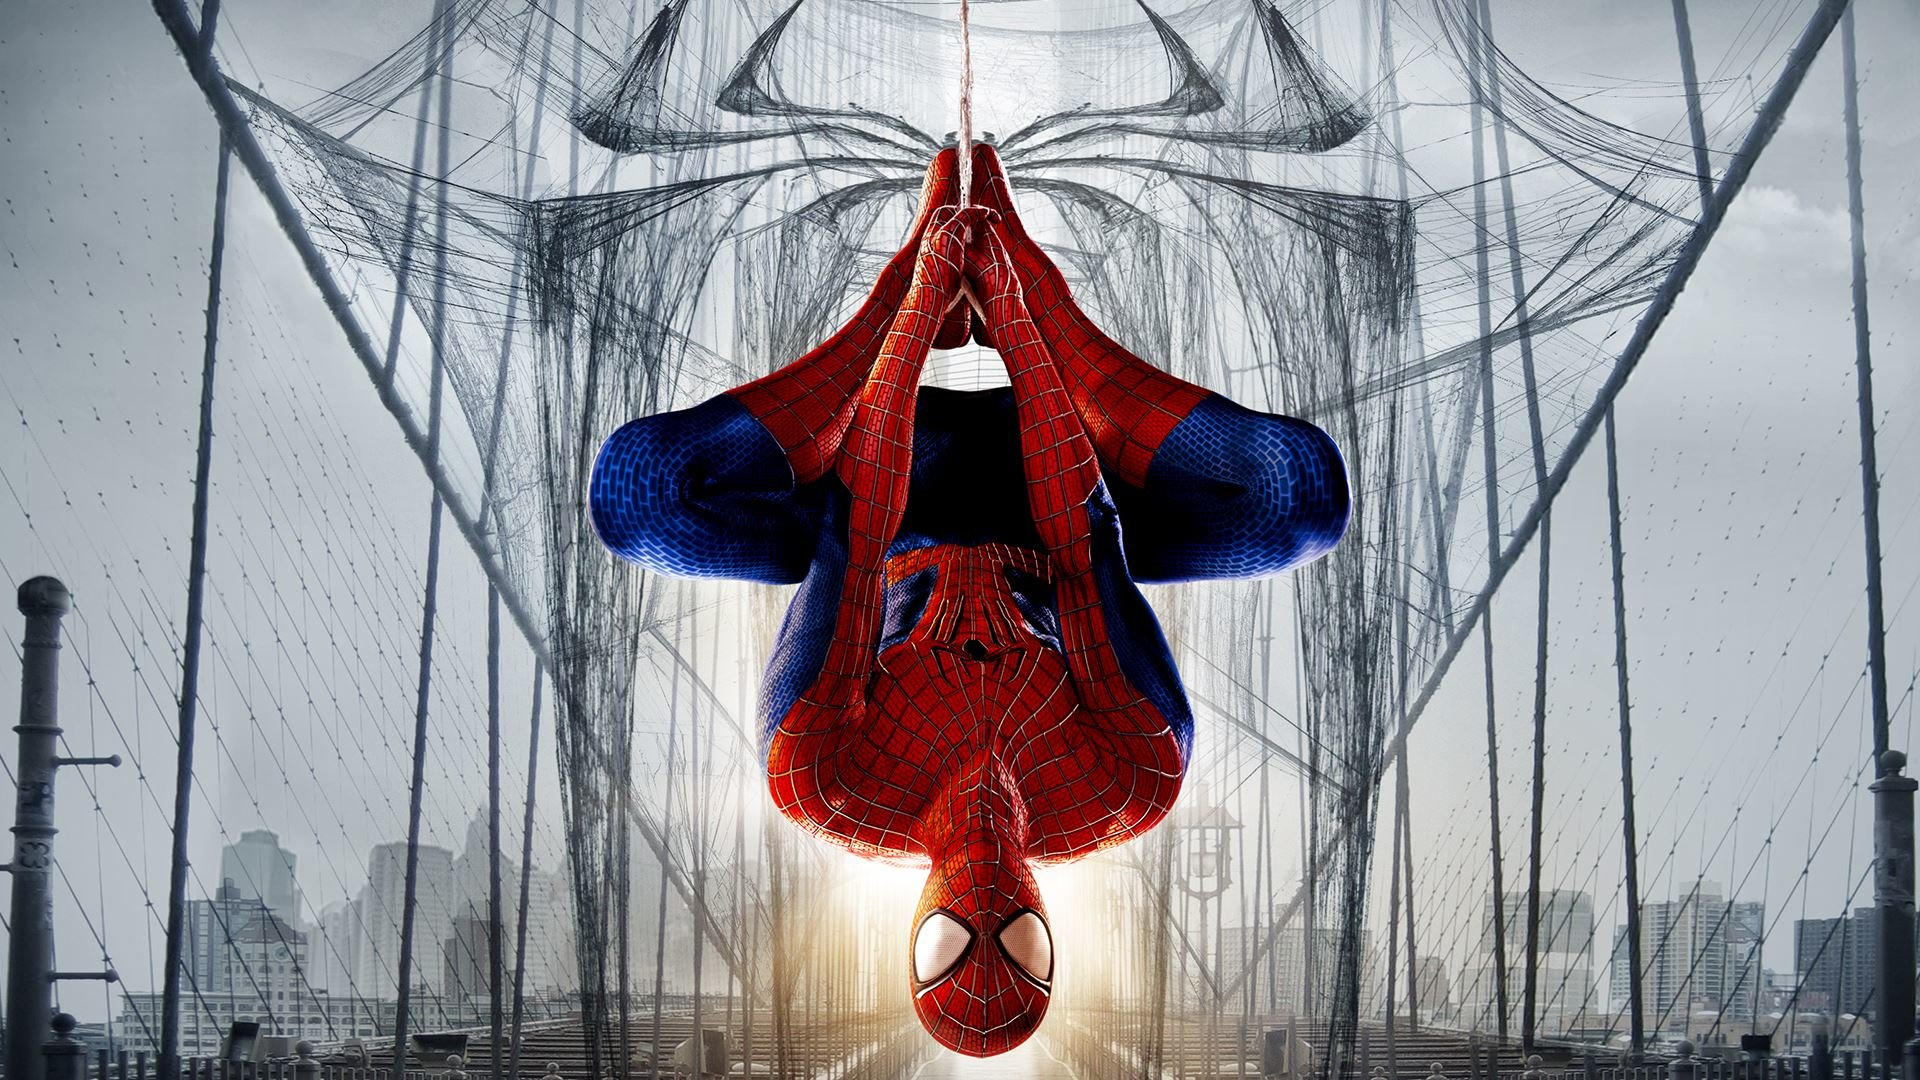 Free Download The Amazing Spider Man 2 Wallpaper ID102272 Hd 1920x1080 For Computer